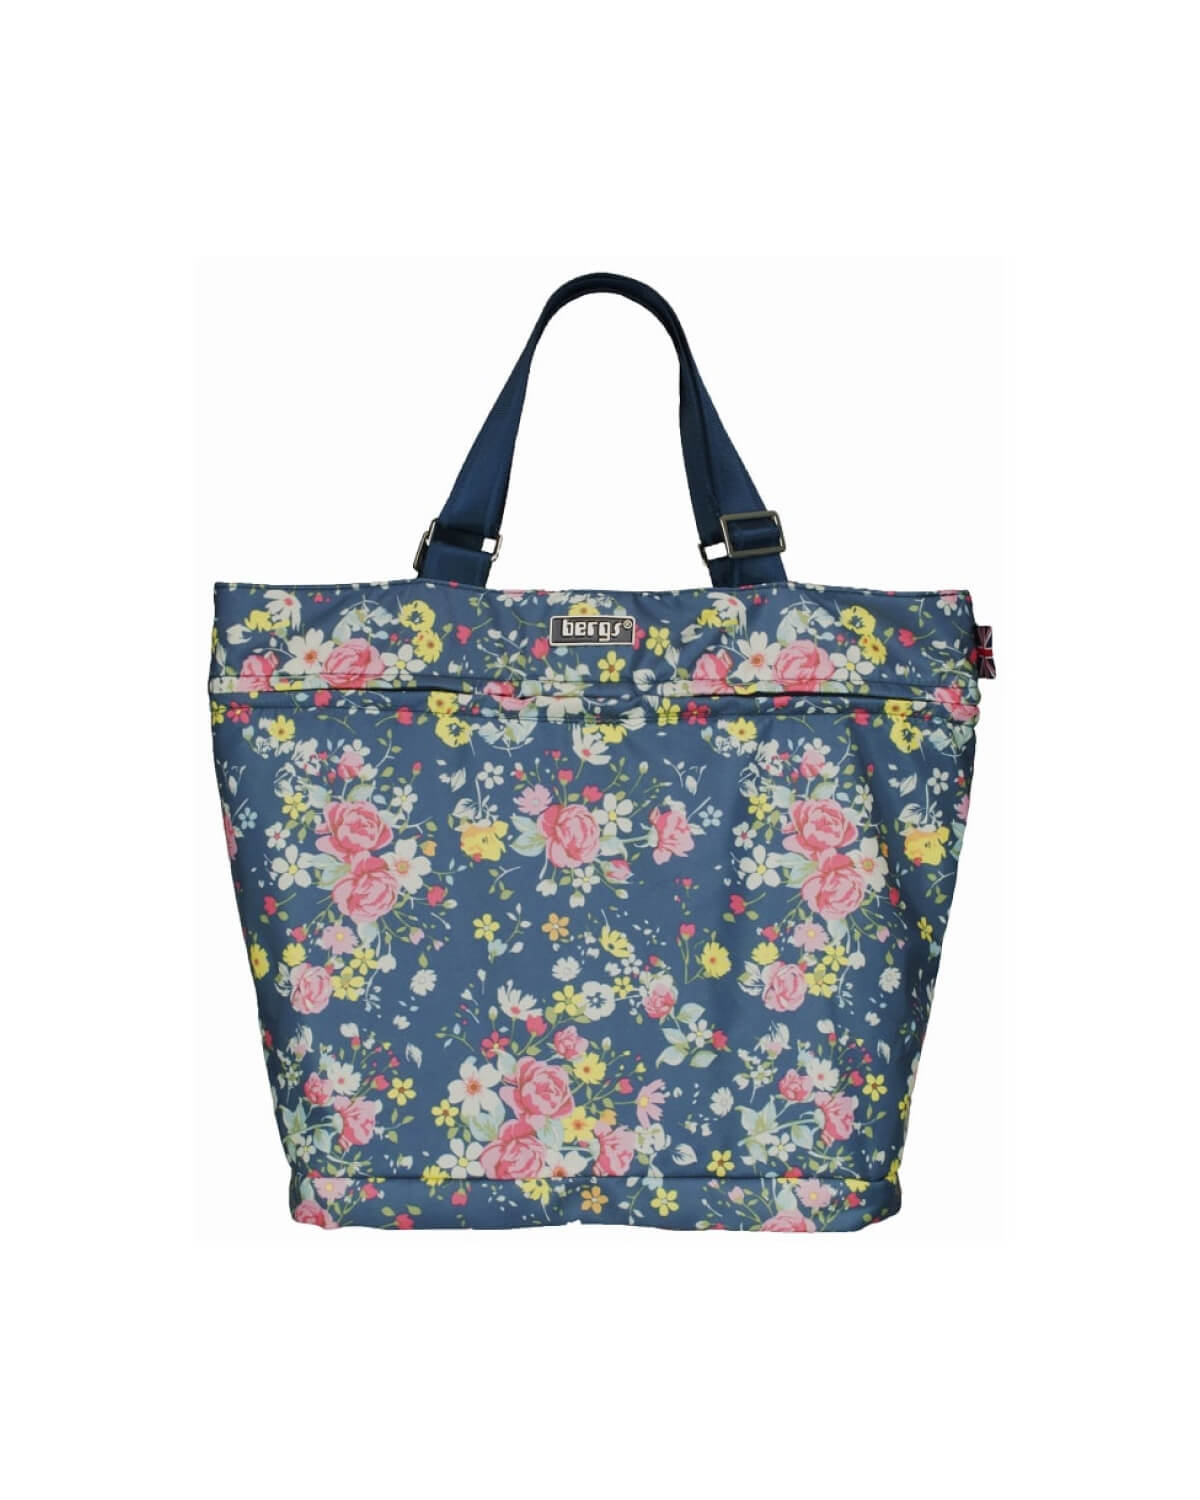 Bergs3in1 Multifunctional Bag Blue with Roses